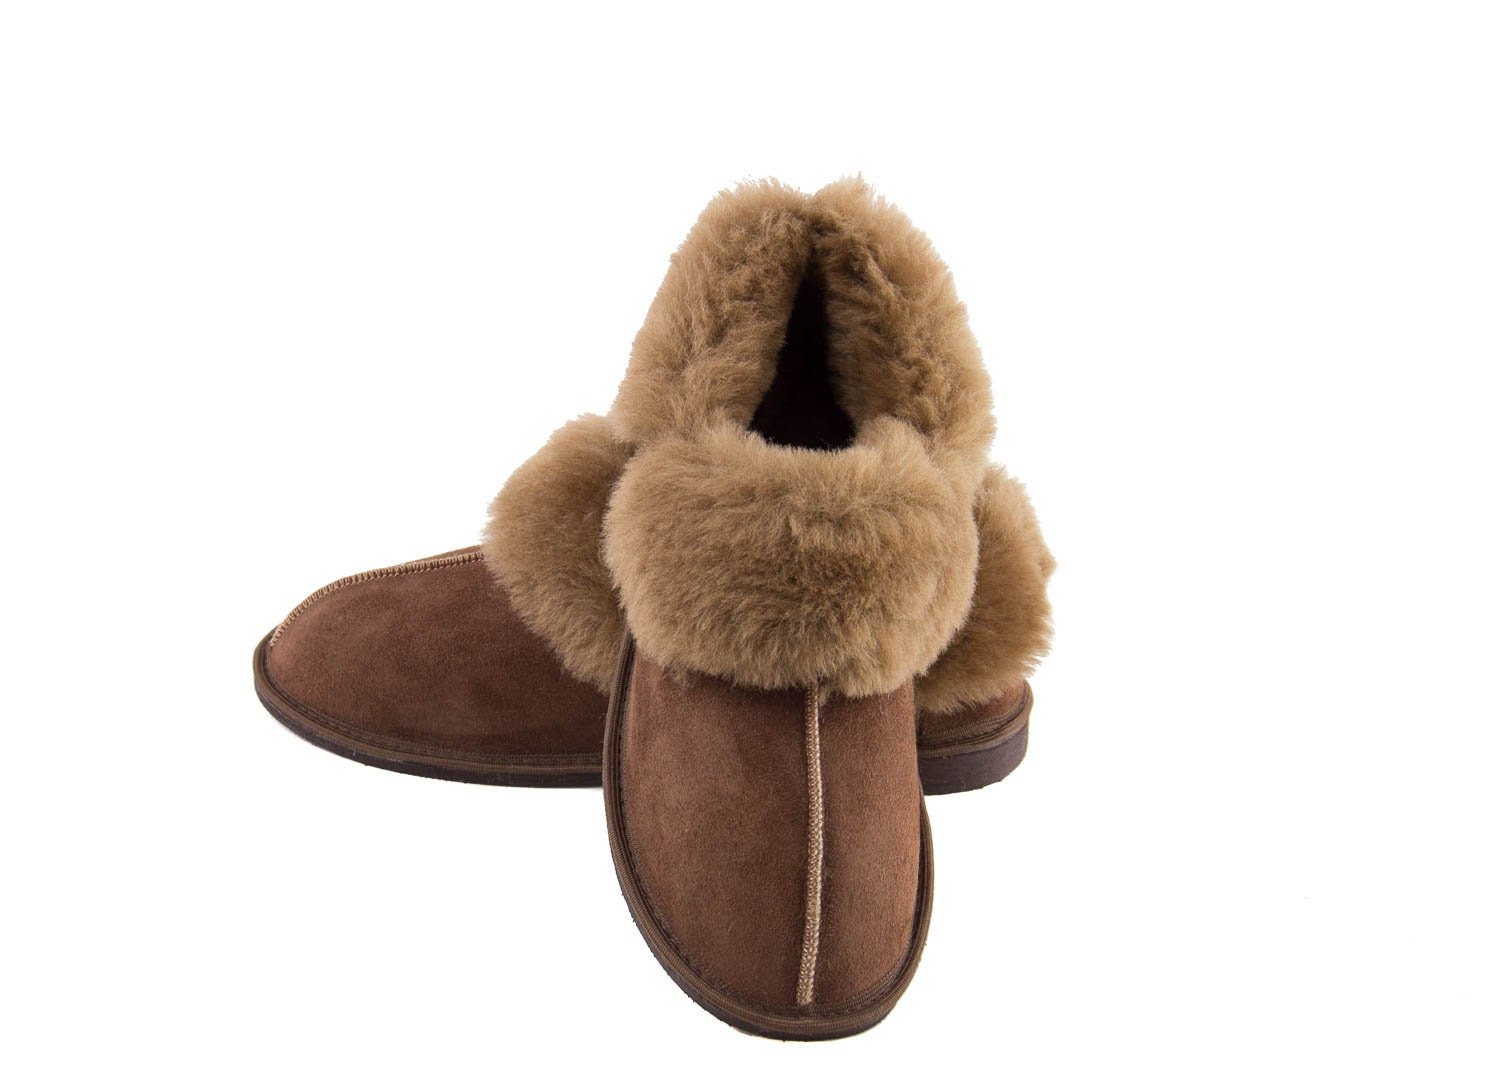 debbf145de8b7 Unisex slippers made from genuine sheepskin with the wool turned in ...